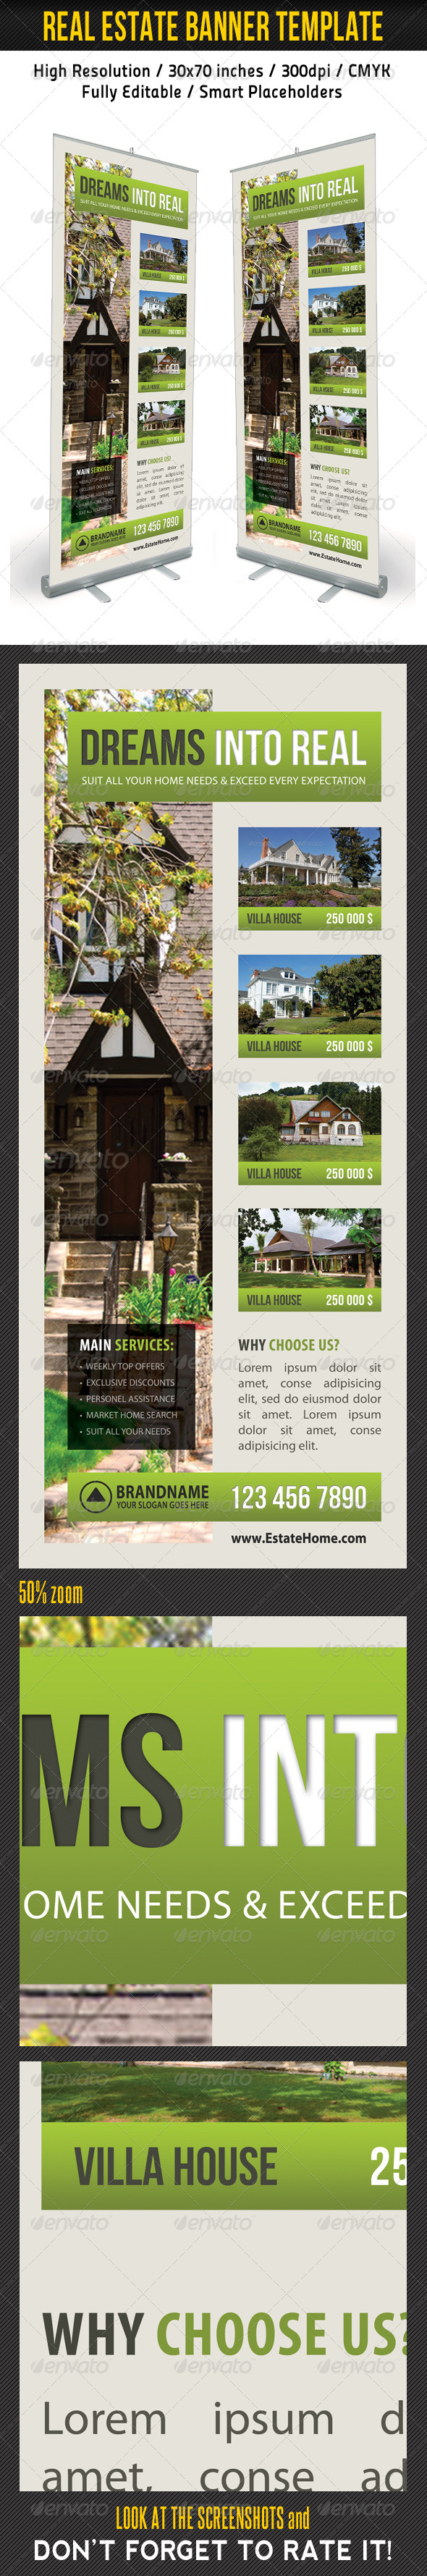 Real Estate Banner Template 12 - Signage Print Templates